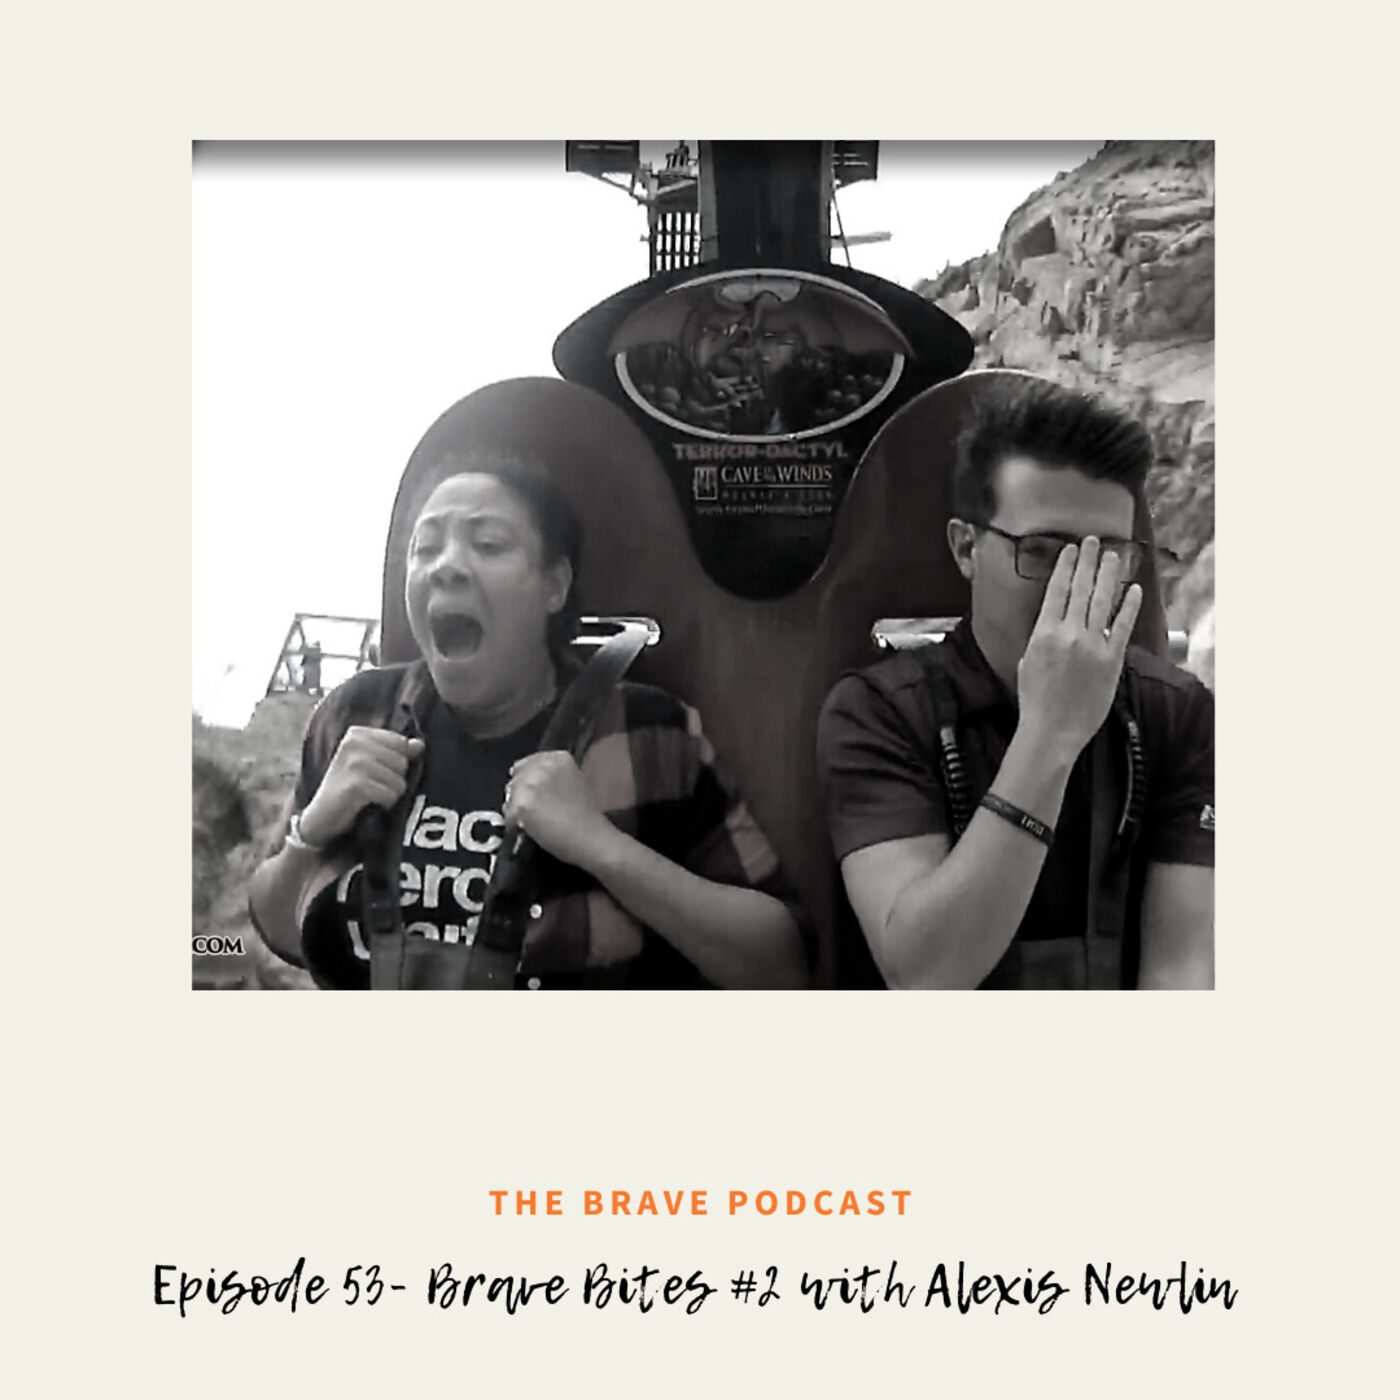 Brave Bites #2 with Alexis Newlin